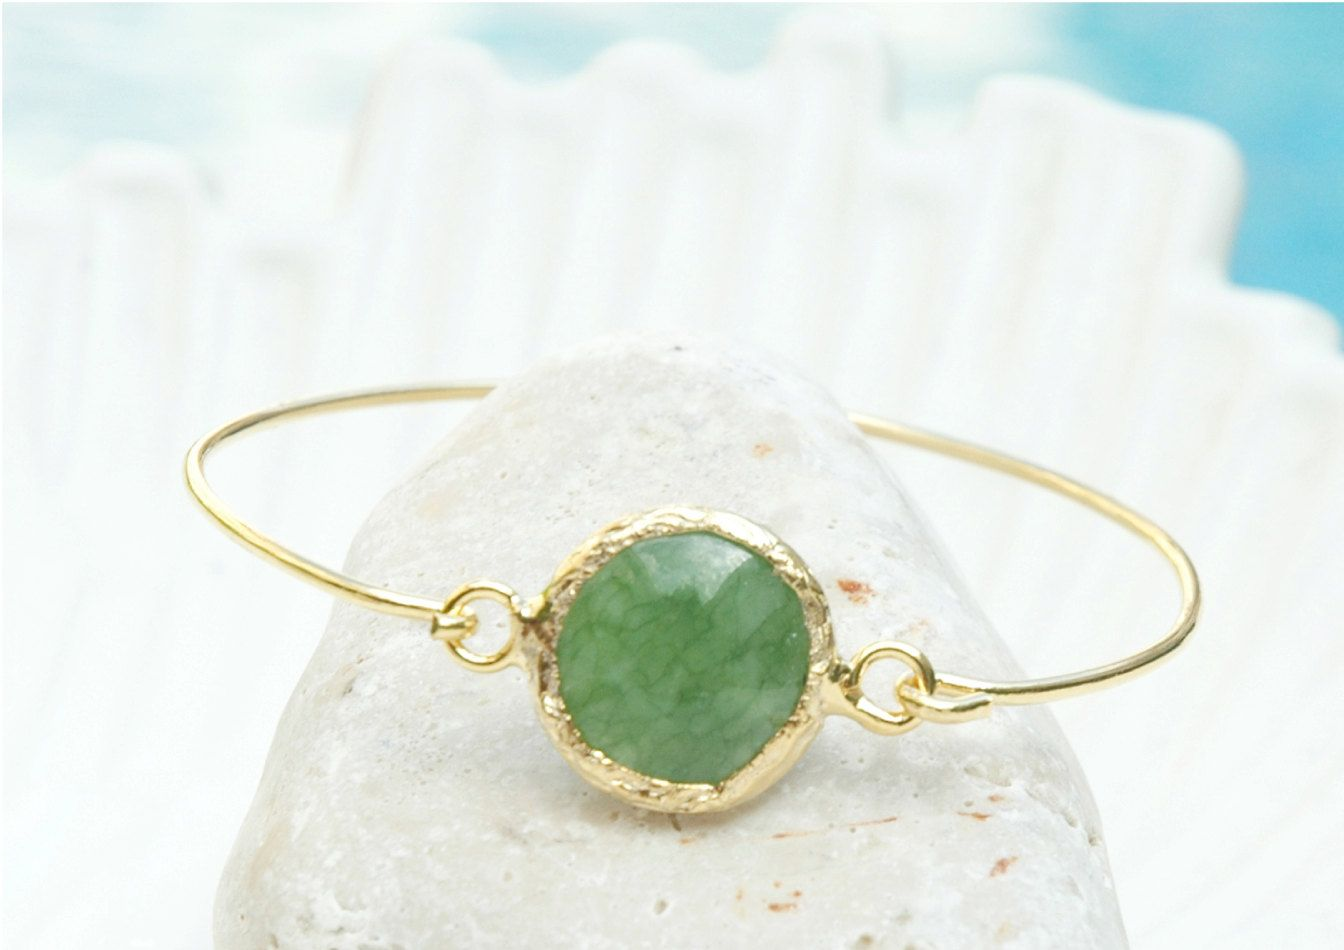 Mystic Jade Bracelet Virginia - Gold and Jade Bracelet, Green Jade Jewelry, Jade Bangle Bracelet, Jade and Gold filled Jewelry by mysticdukkan on Etsy